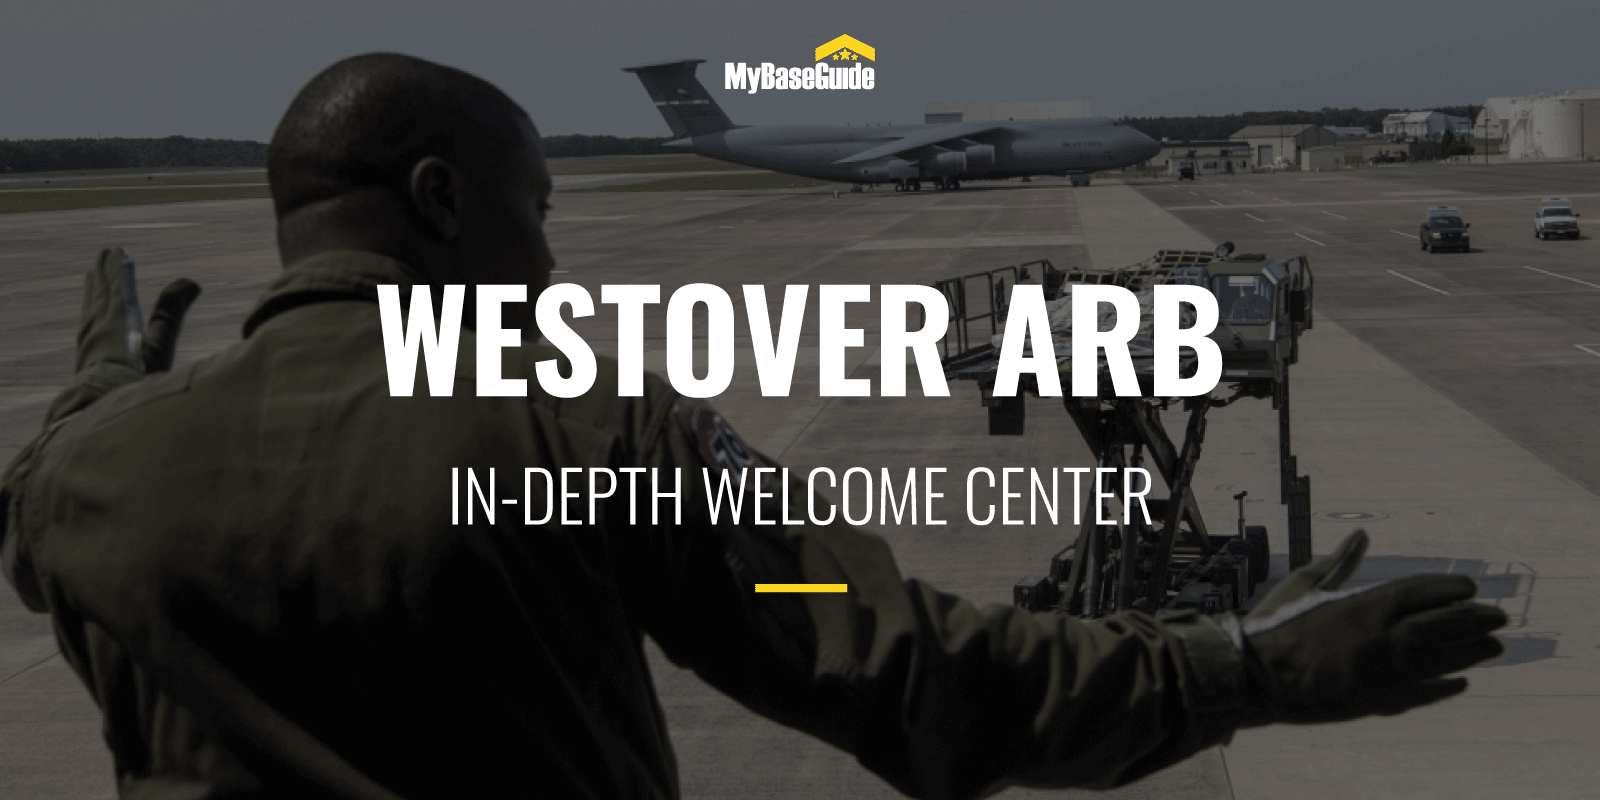 Westover Air Reserve Base: In-Depth Welcome Center